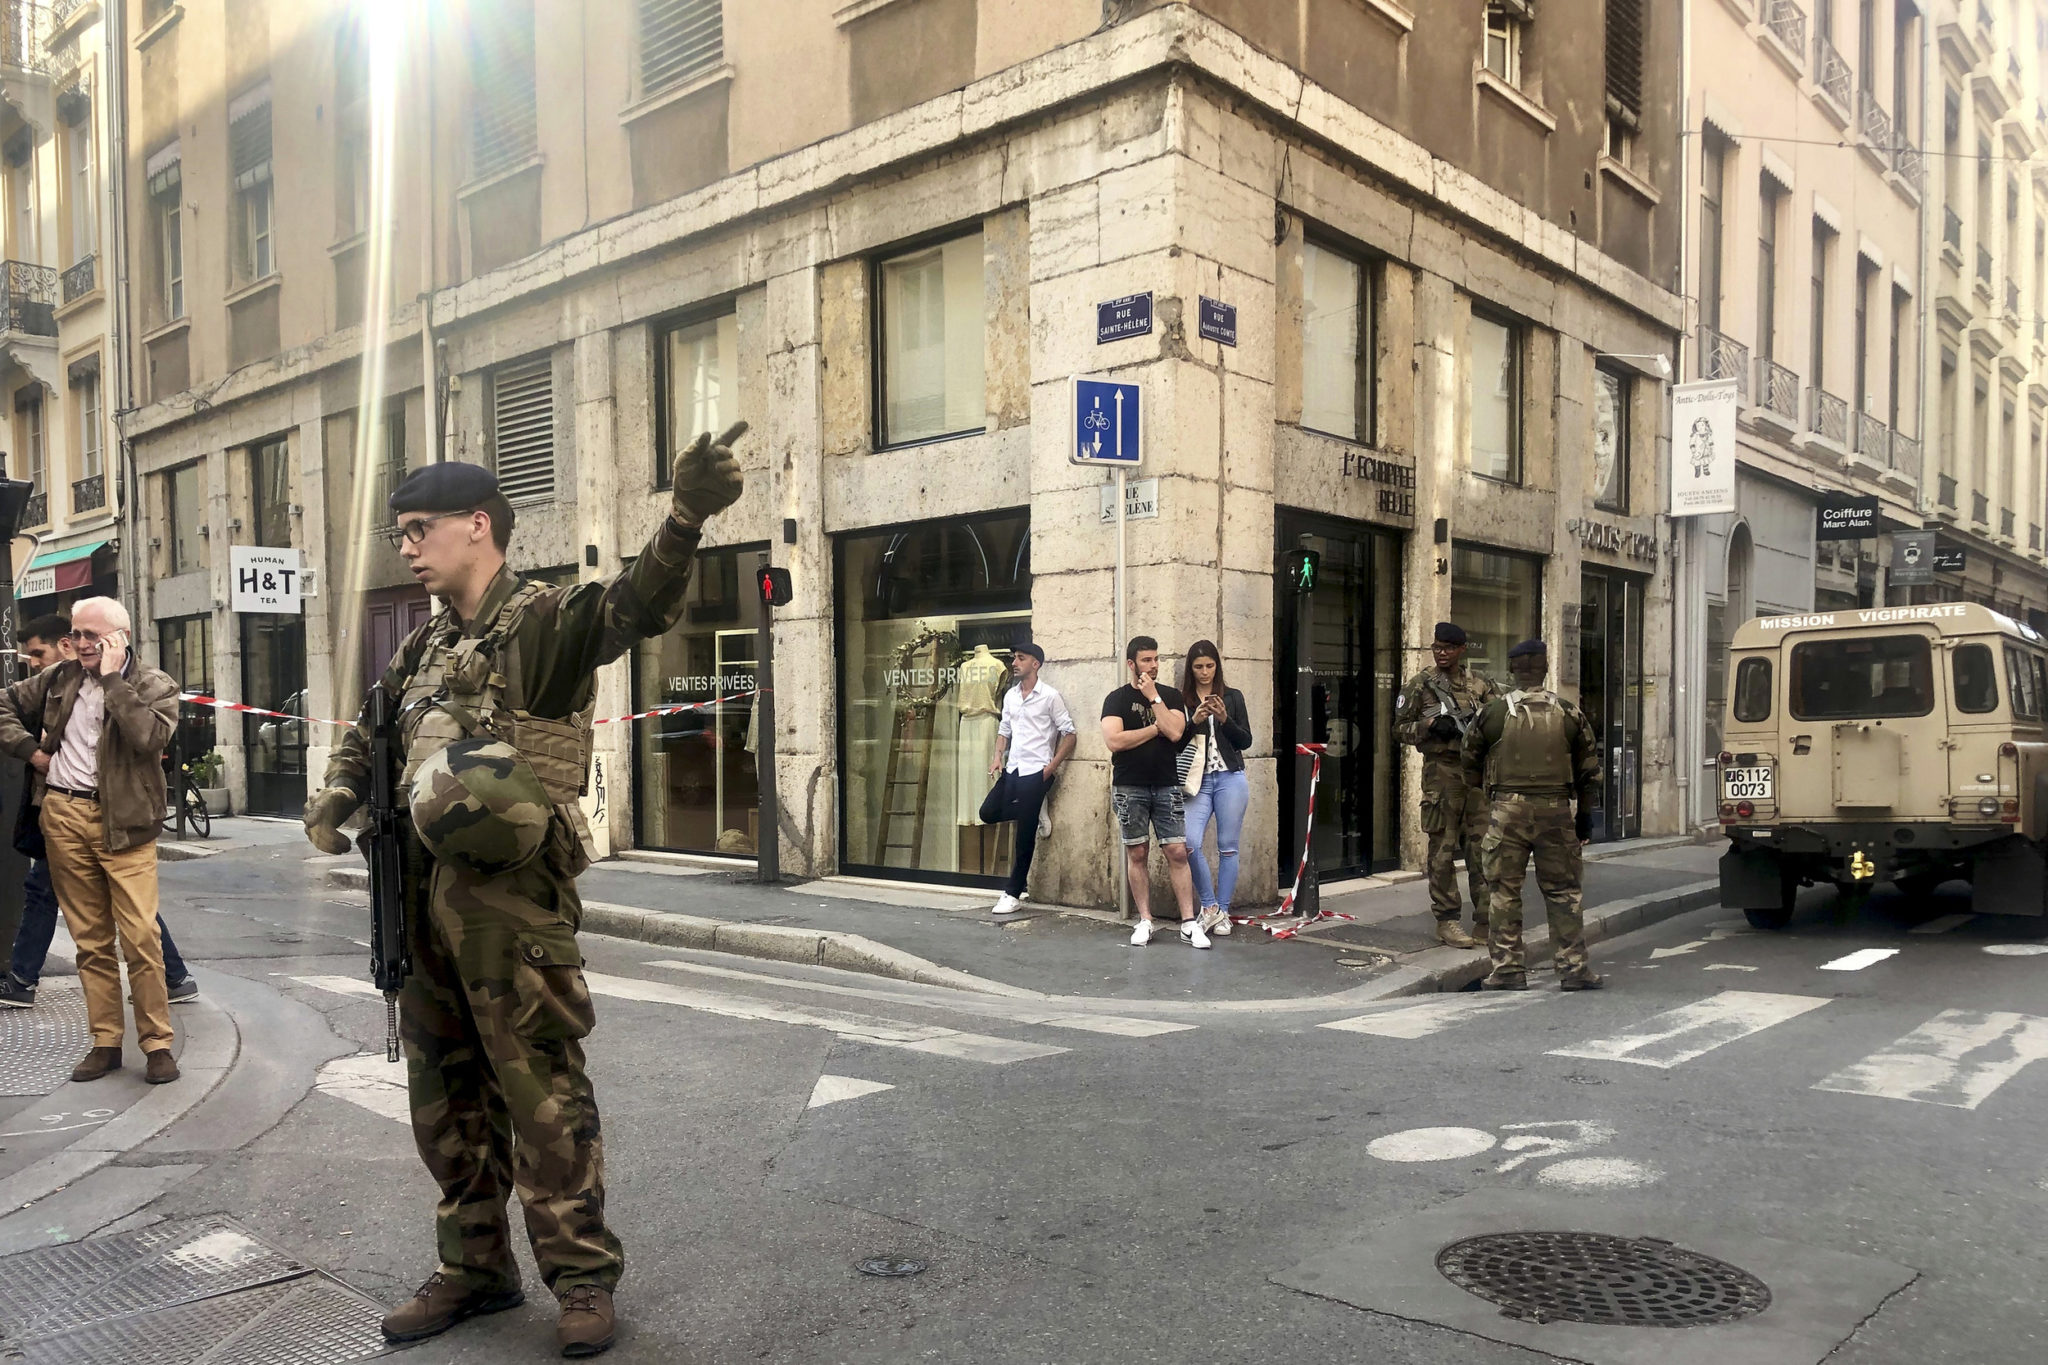 Terror Probe After 'Low Force' Blast in French City of Lyon